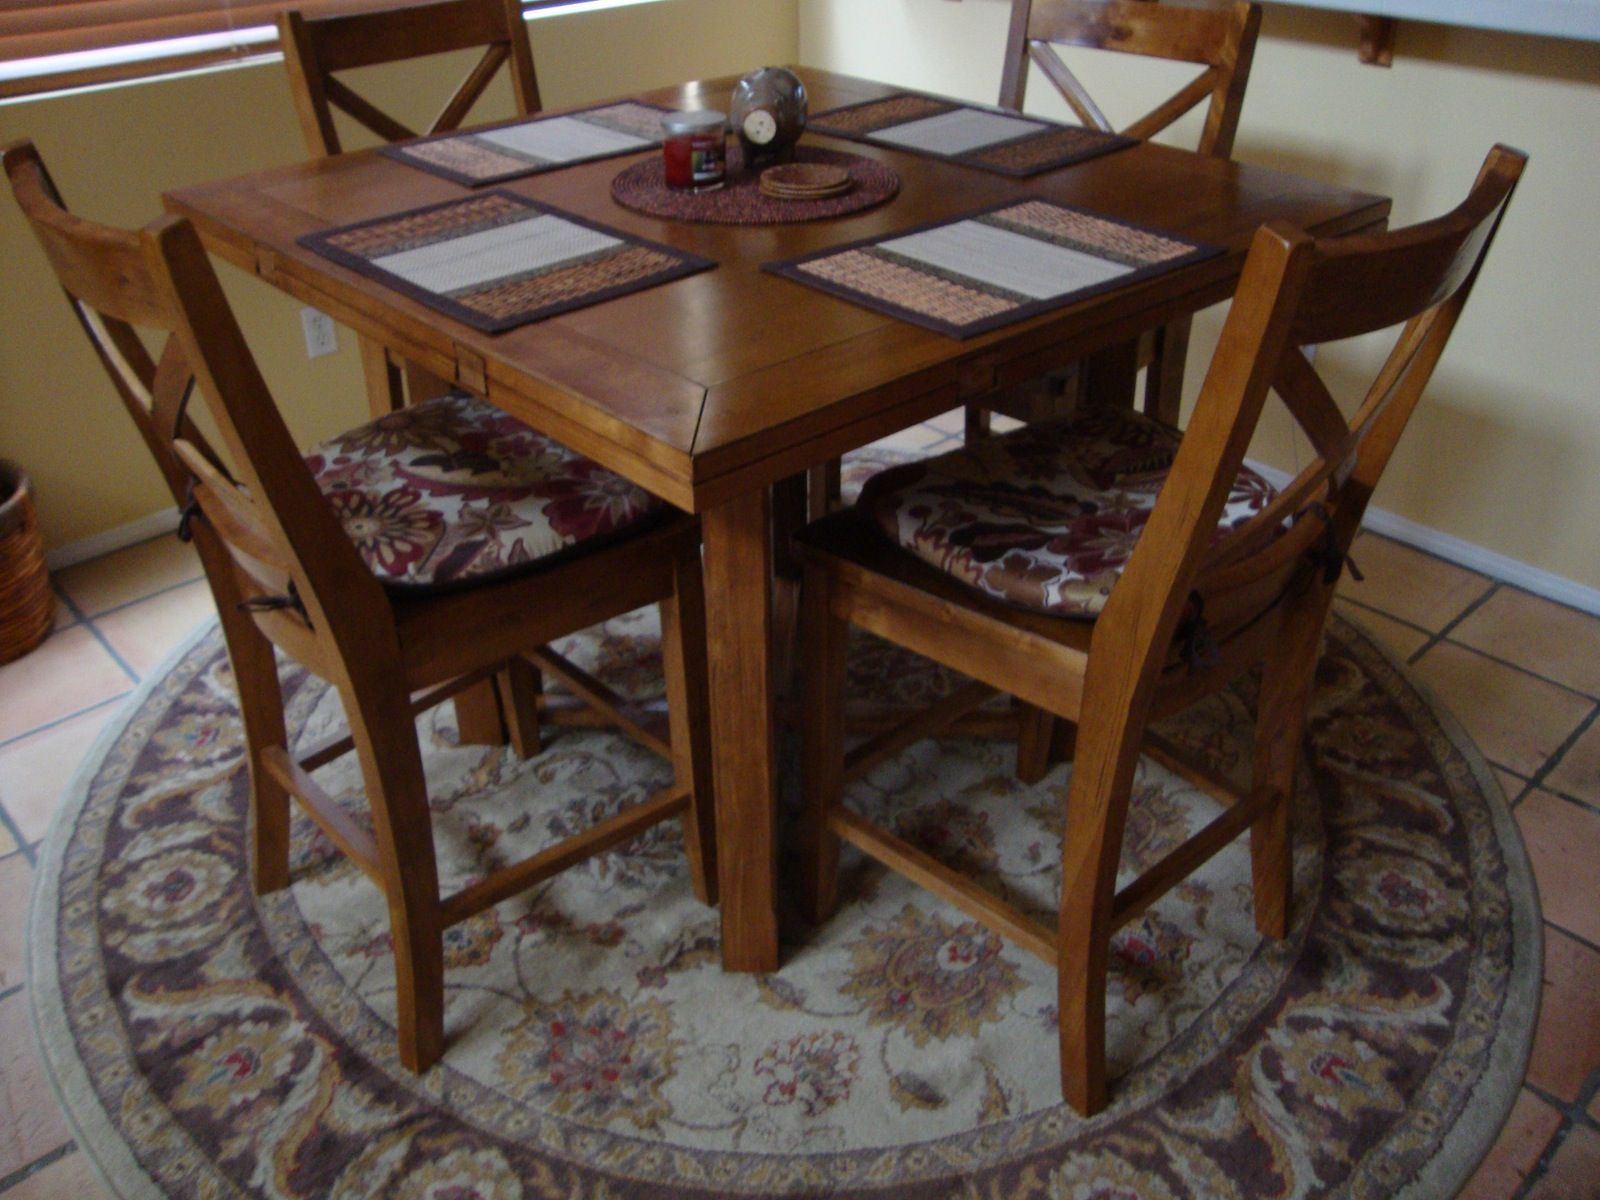 Yes A Square Table Does Go Well On A Round Rug Round Rugs - Square rug under round table